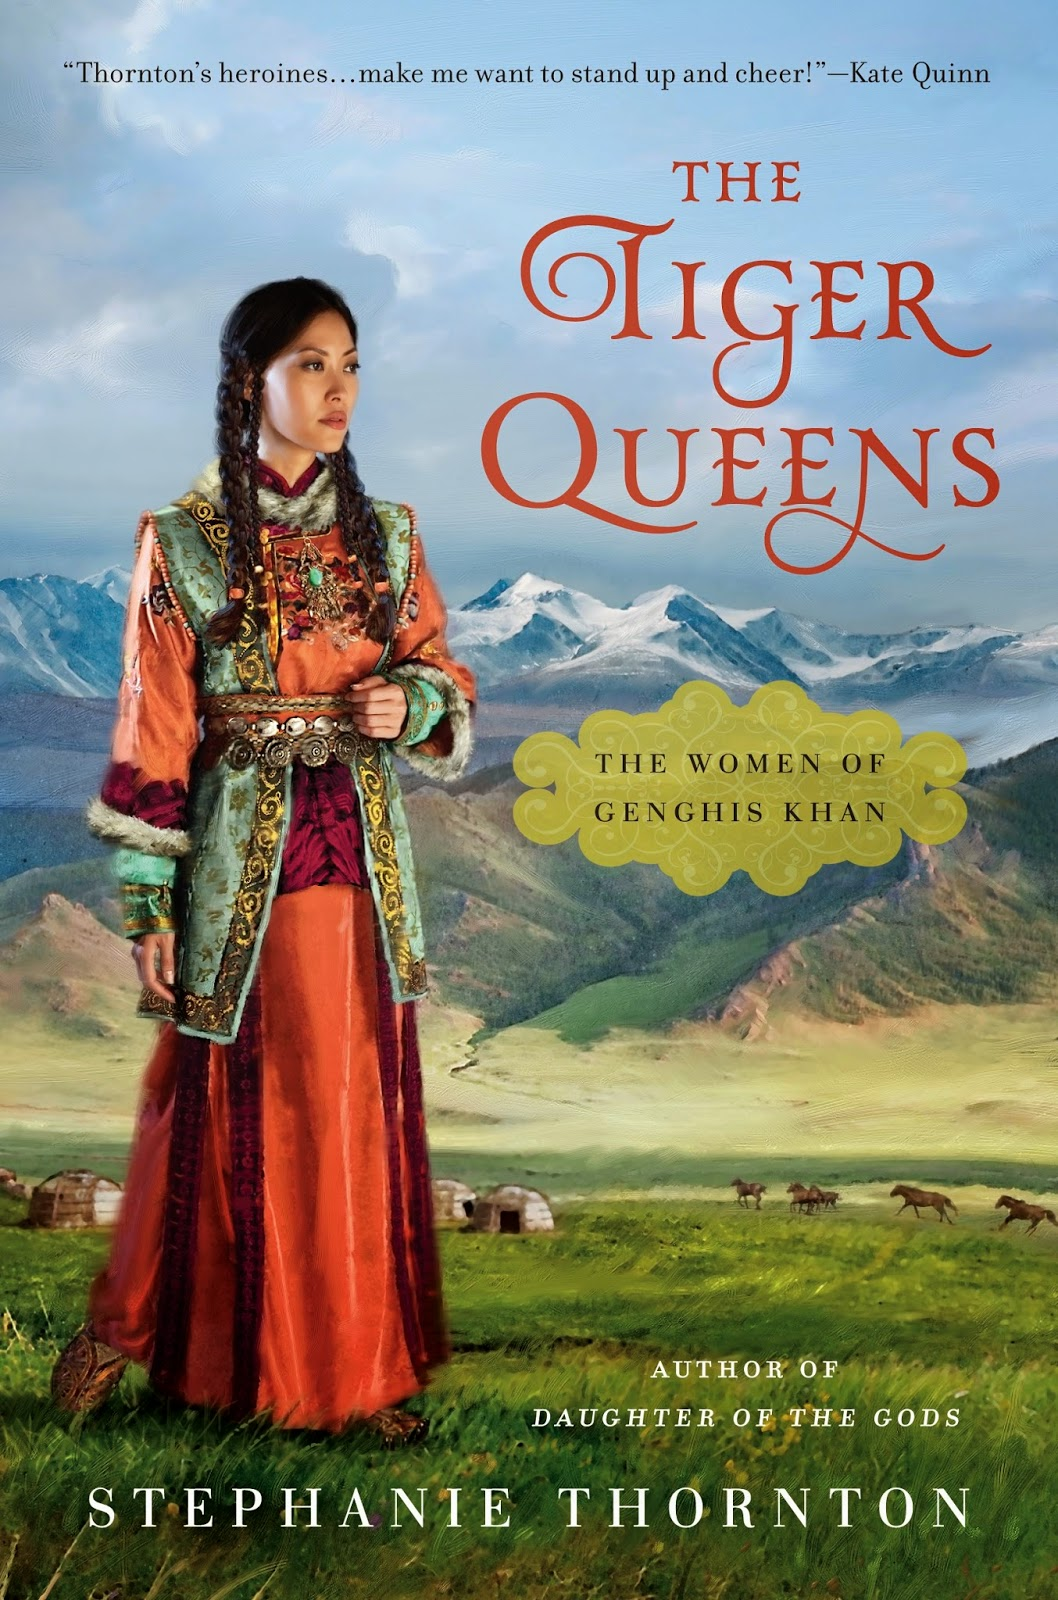 http://www.amazon.com/The-Tiger-Queens-Women-Genghis/dp/0451417801/ref=sr_1_2?ie=UTF8&qid=1397417502&sr=8-2&keywords=tiger+queens